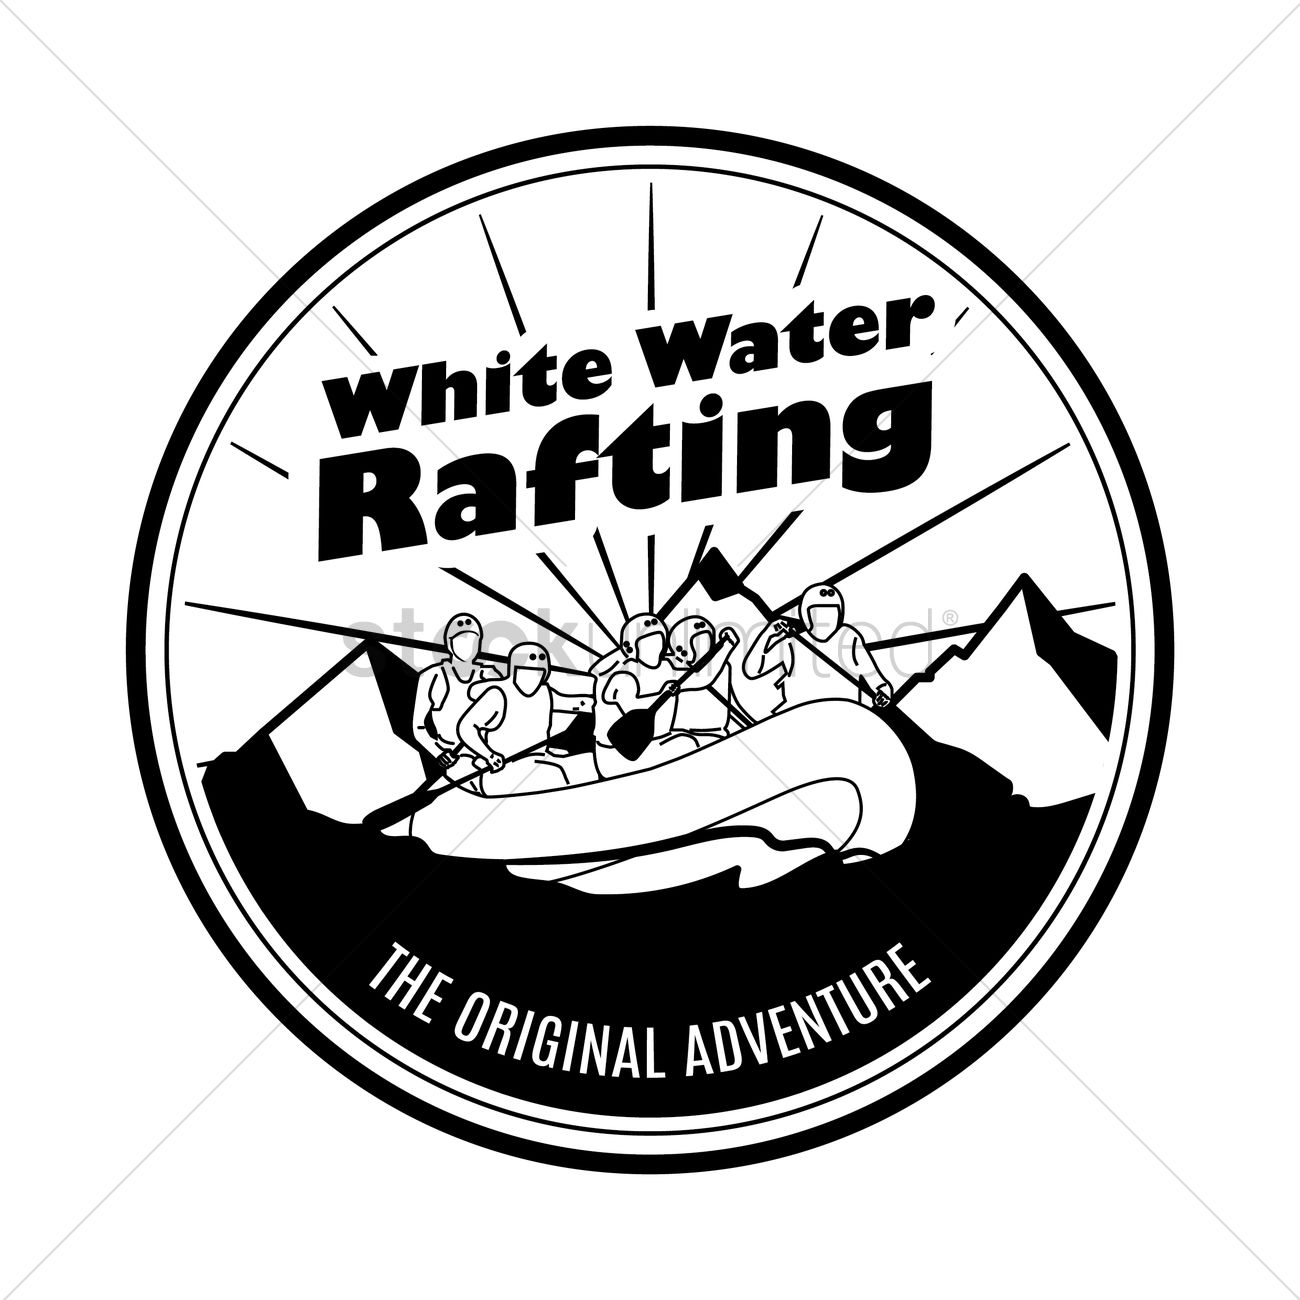 White water logo clipart image black and white library White water rafting label Vector Image - 1624070 | StockUnlimited image black and white library